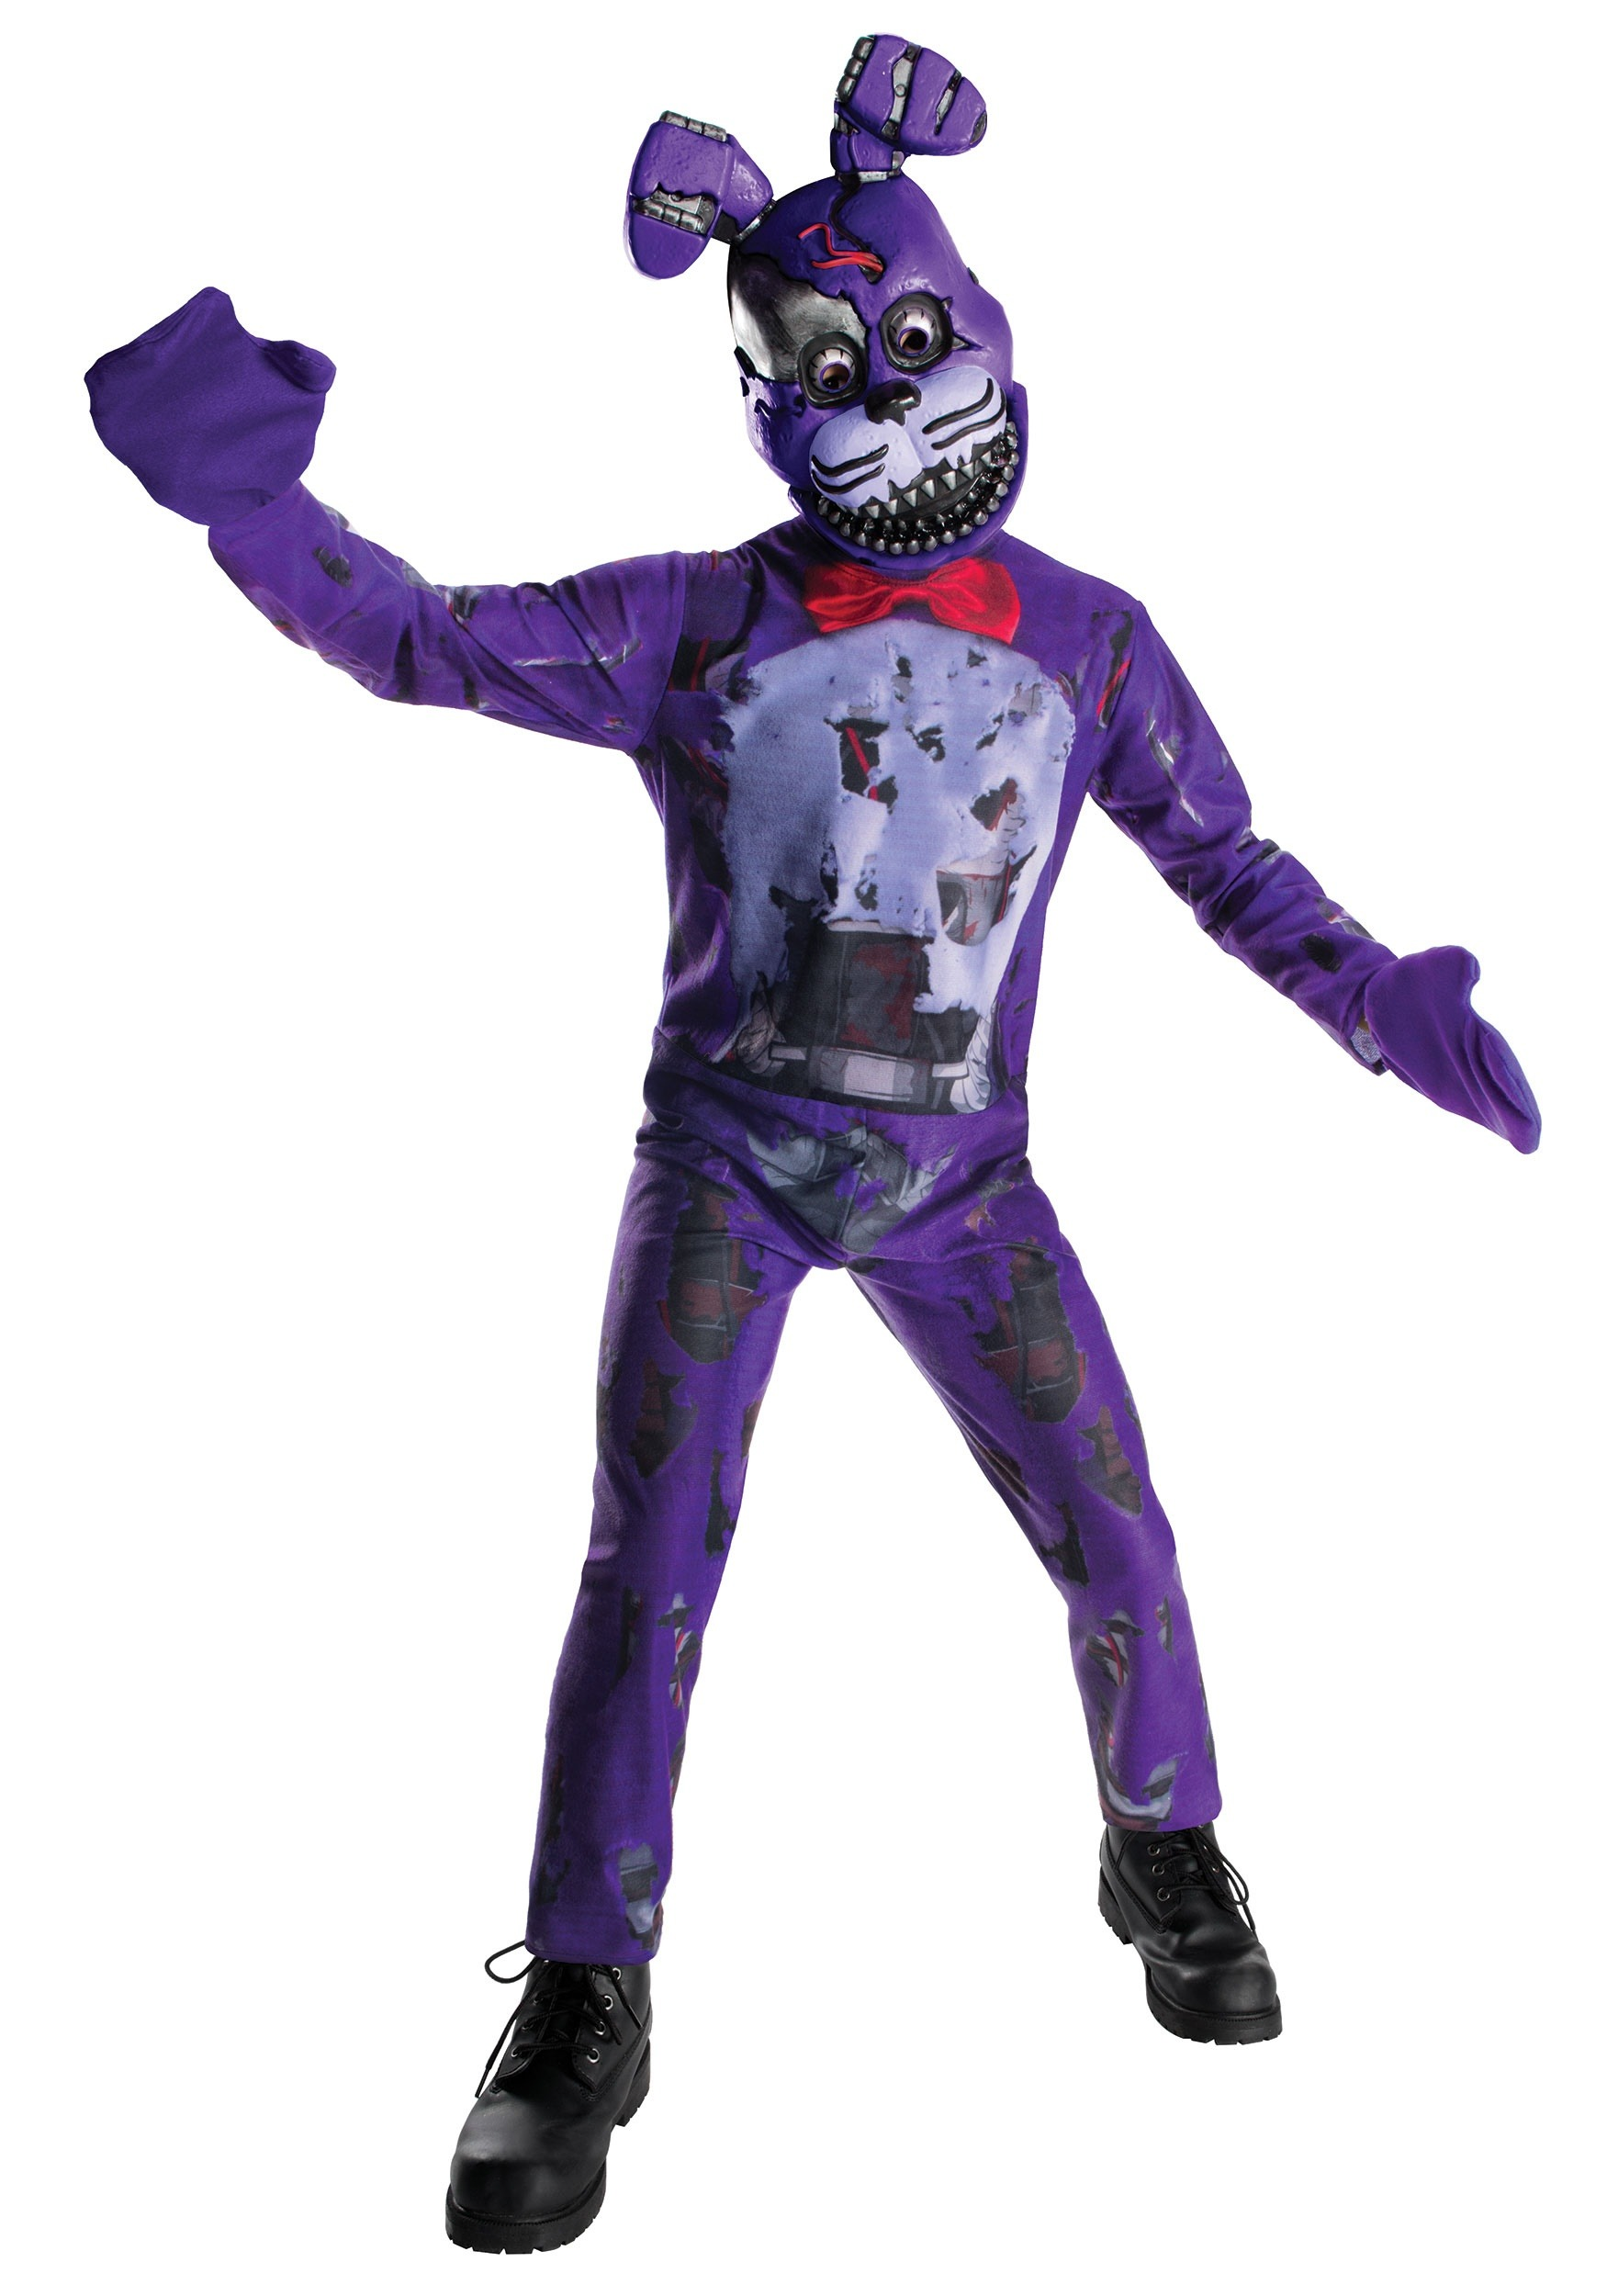 Fnaf bonnie costume for sale - Five Nights At Freddy S Nightmare Bonnie Kids Costume